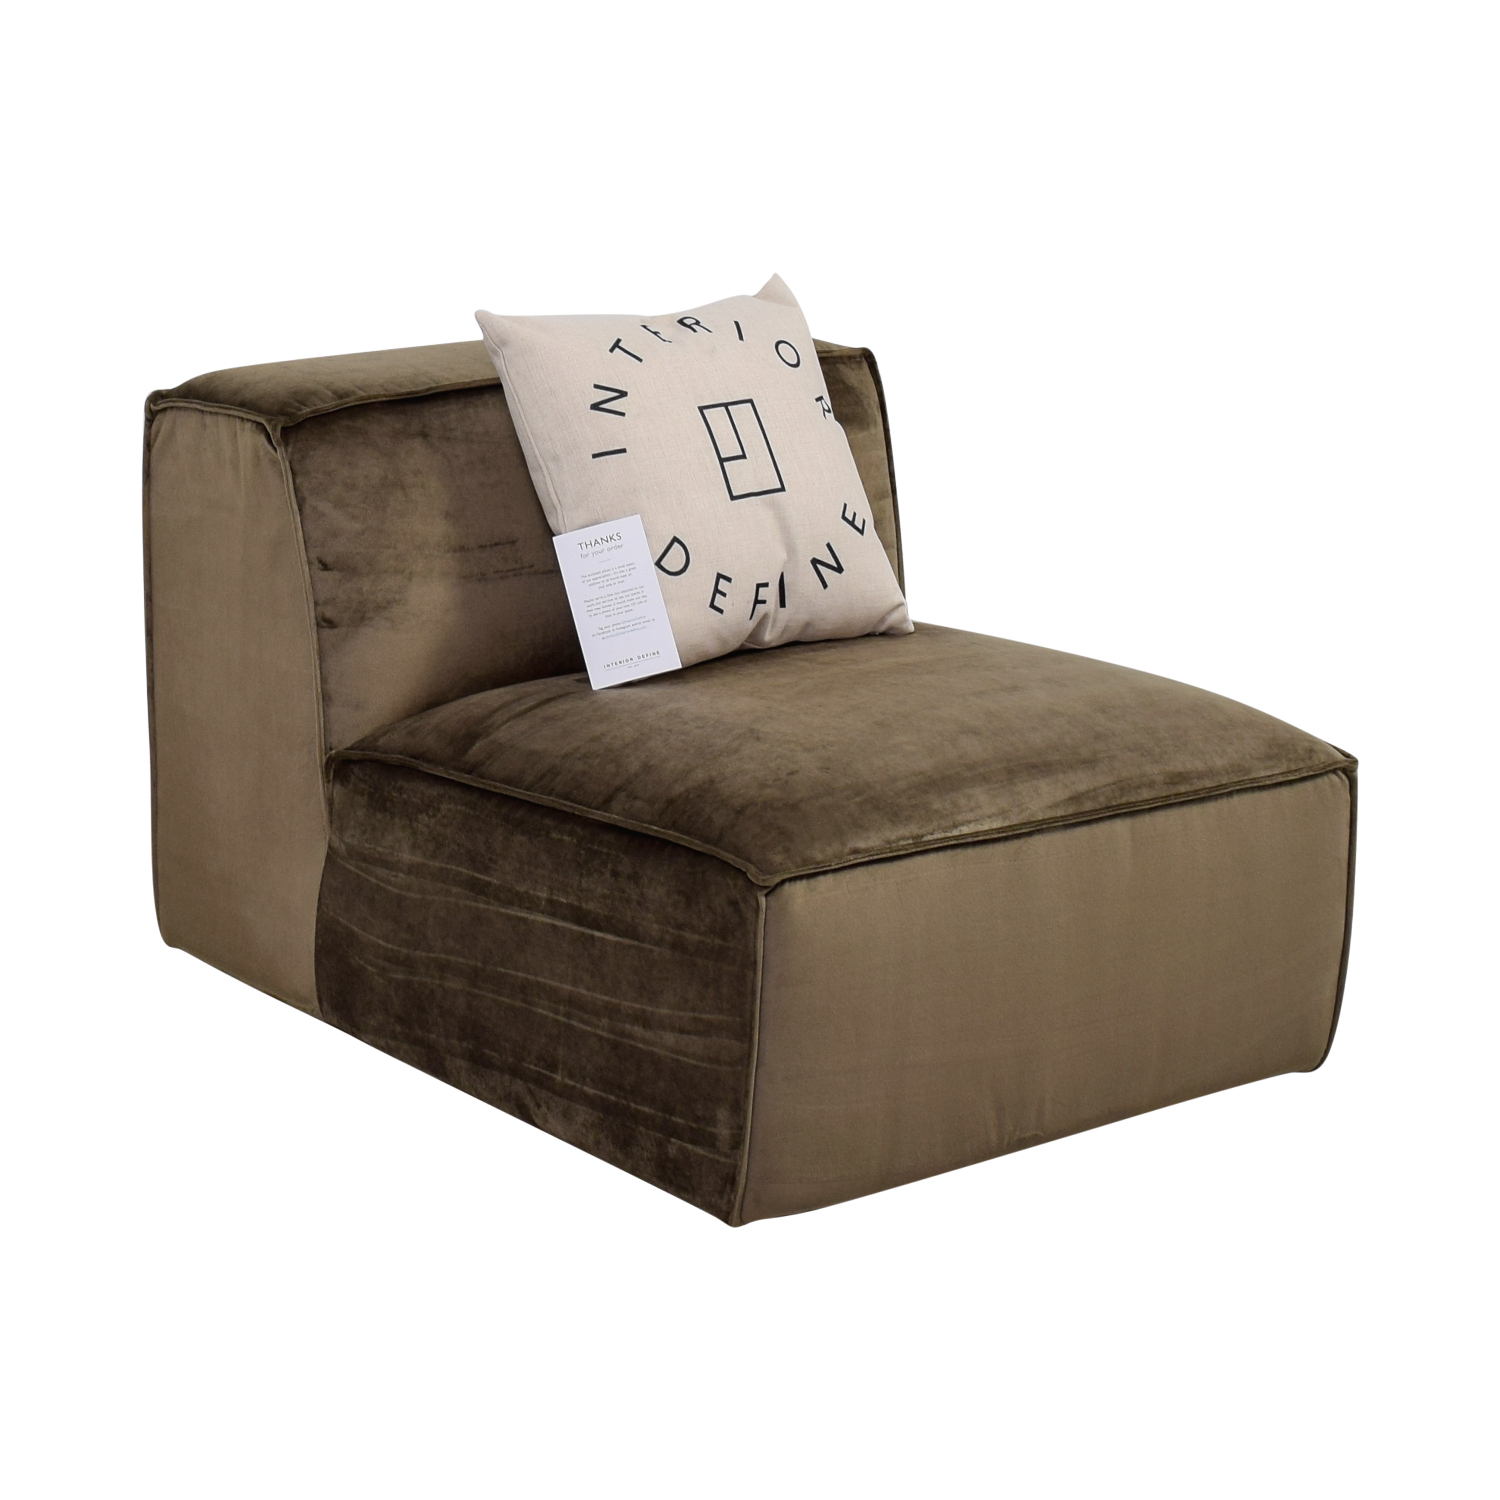 Magnificent 62 Off Gold Brown Armless Accent Chair Sofas Alphanode Cool Chair Designs And Ideas Alphanodeonline